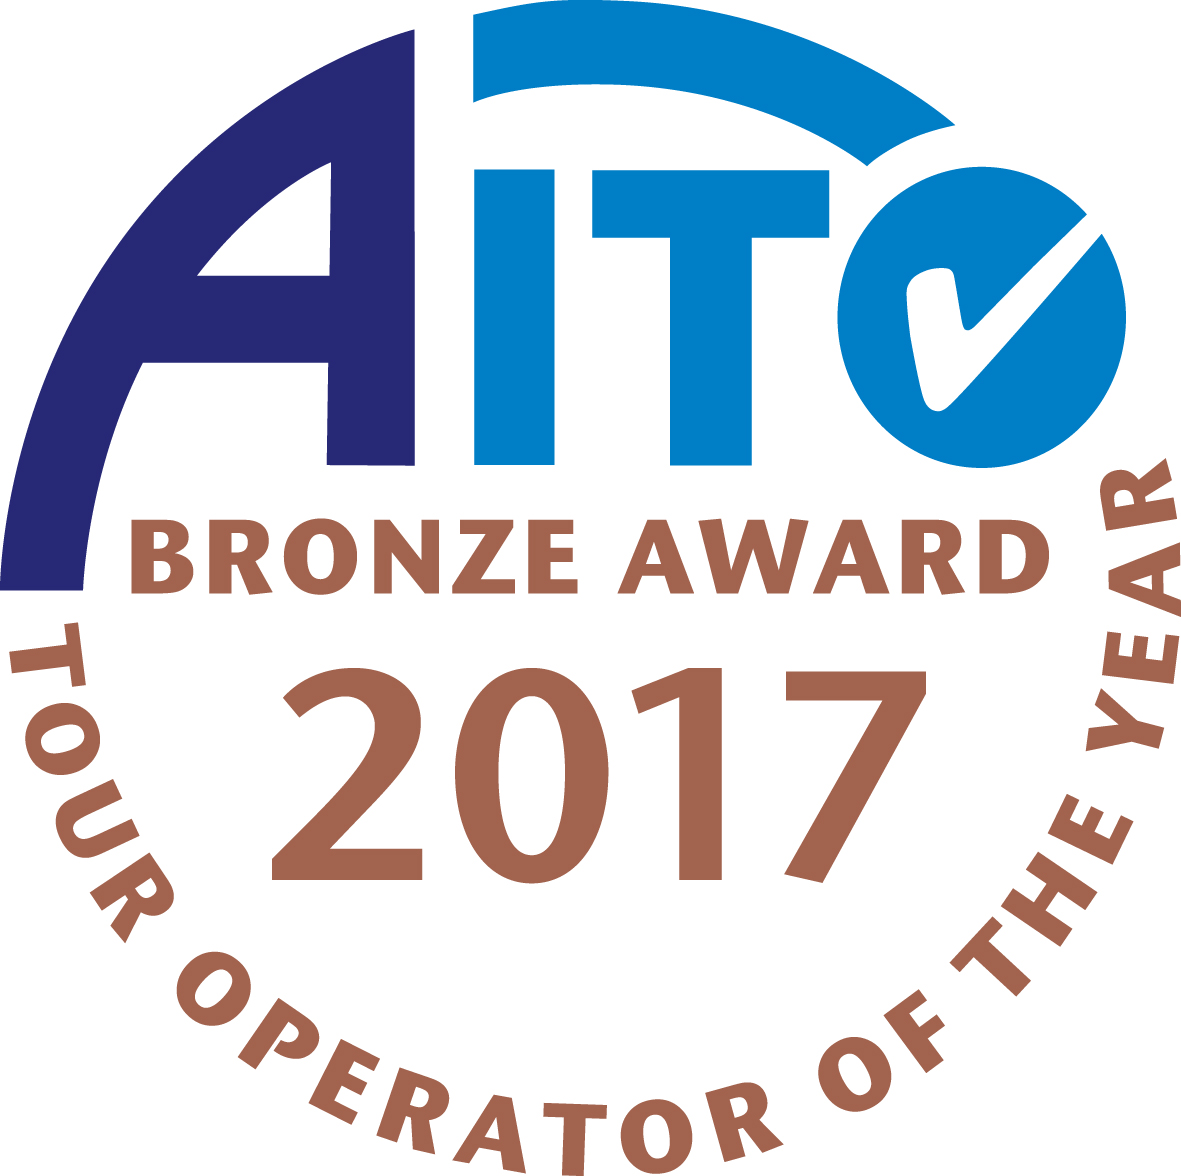 AITO Tour Operator of the Year 2017 - Bronze Award